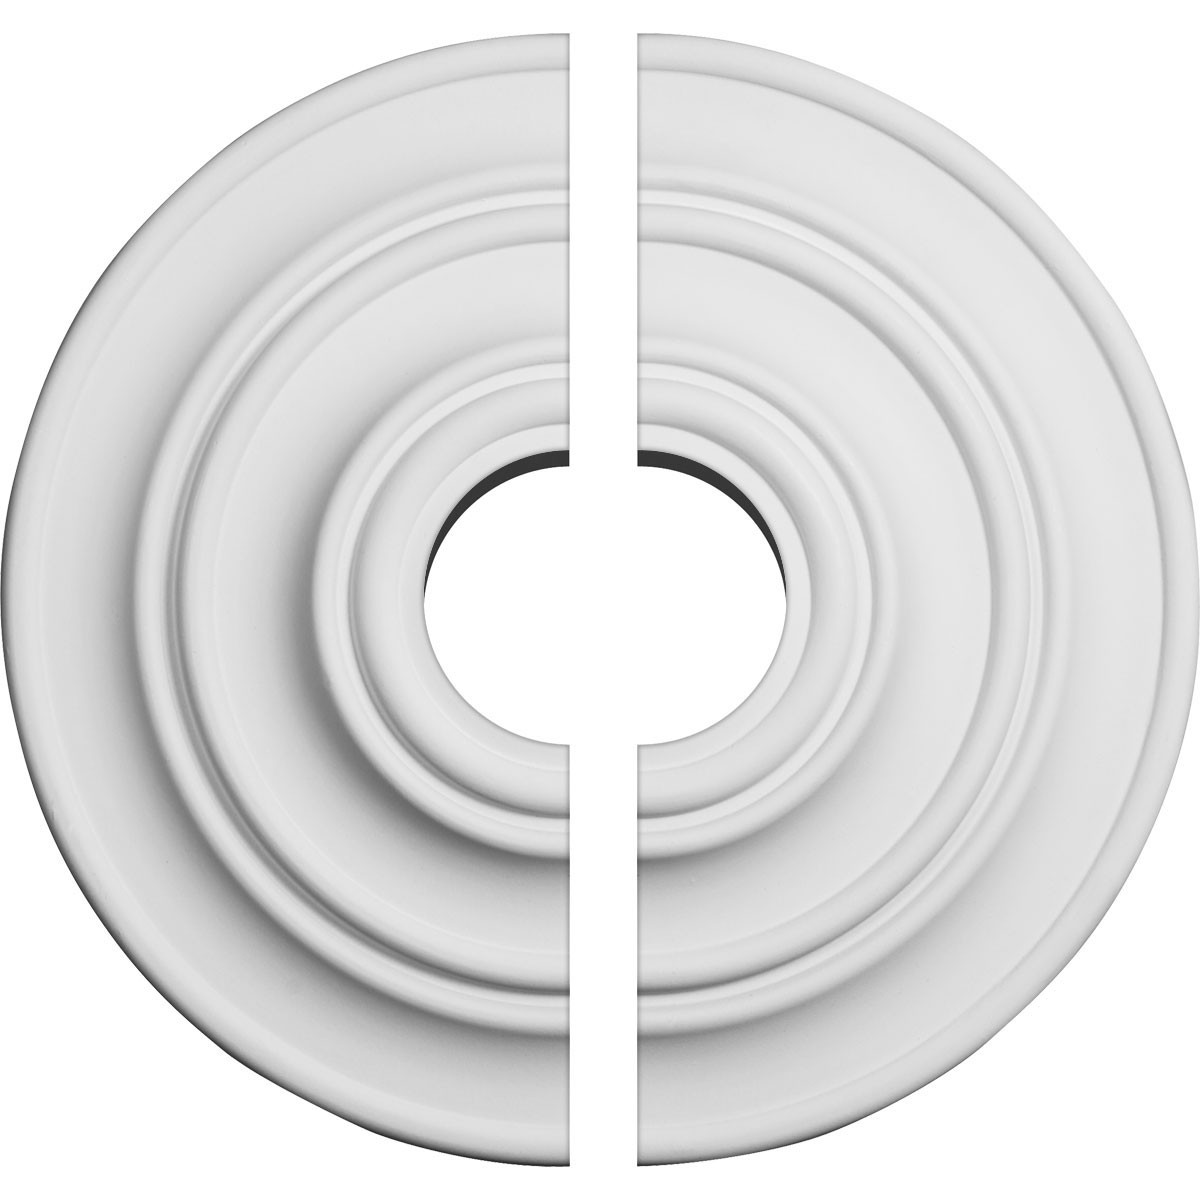 """EM-CM13CL2-03500 - 13 1/4""""OD x 3 1/2""""ID x 1/2""""P Classic Ceiling Medallion, Two Piece (Fits Canopies up to 4 1/8"""")"""